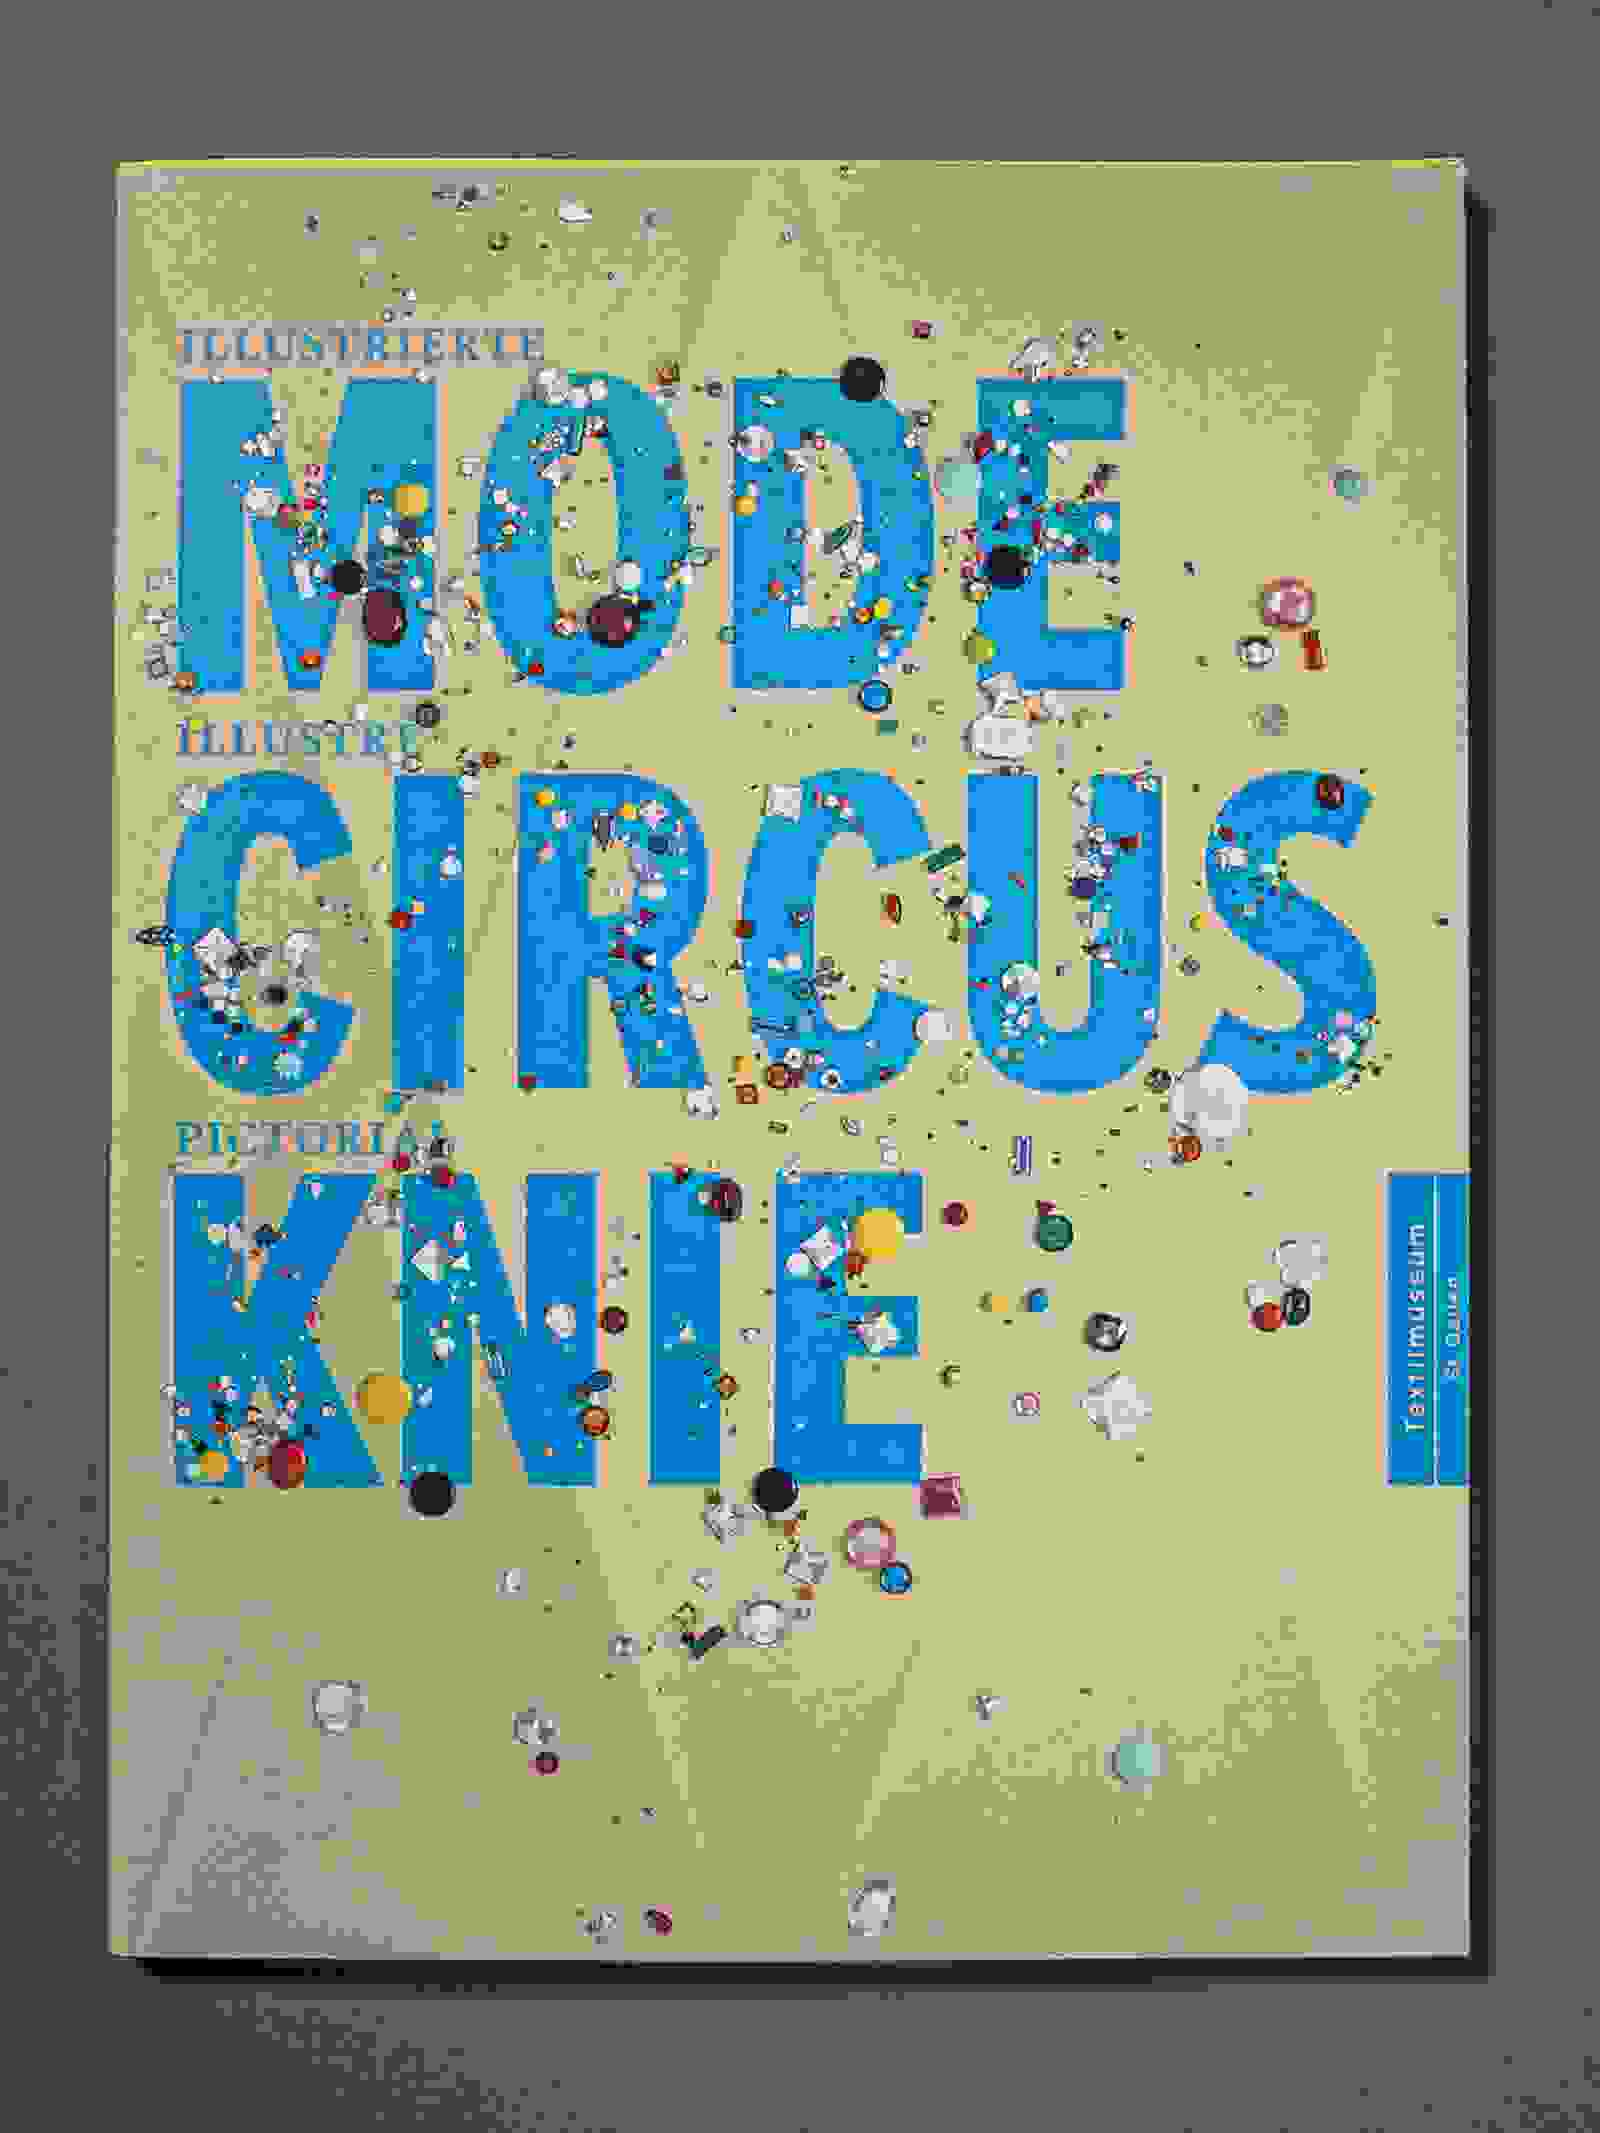 Publikation Mode Circus Knie